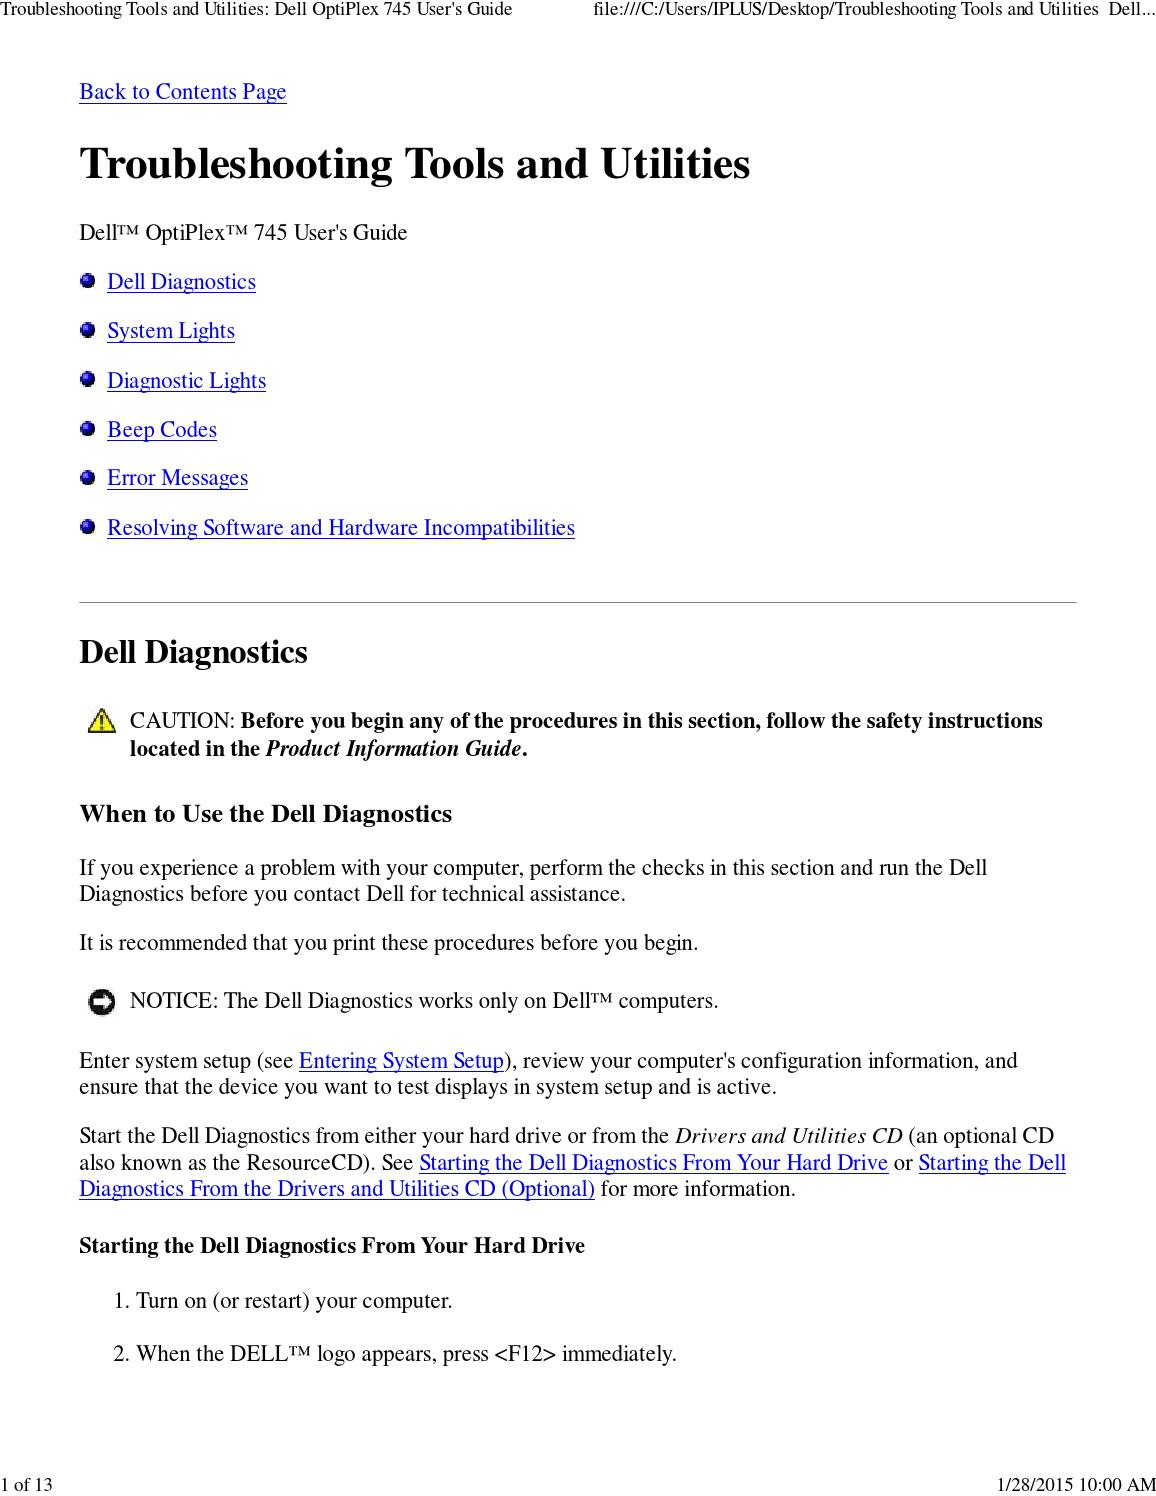 Troubleshooting tools and utilities dell optiplex 745 user's